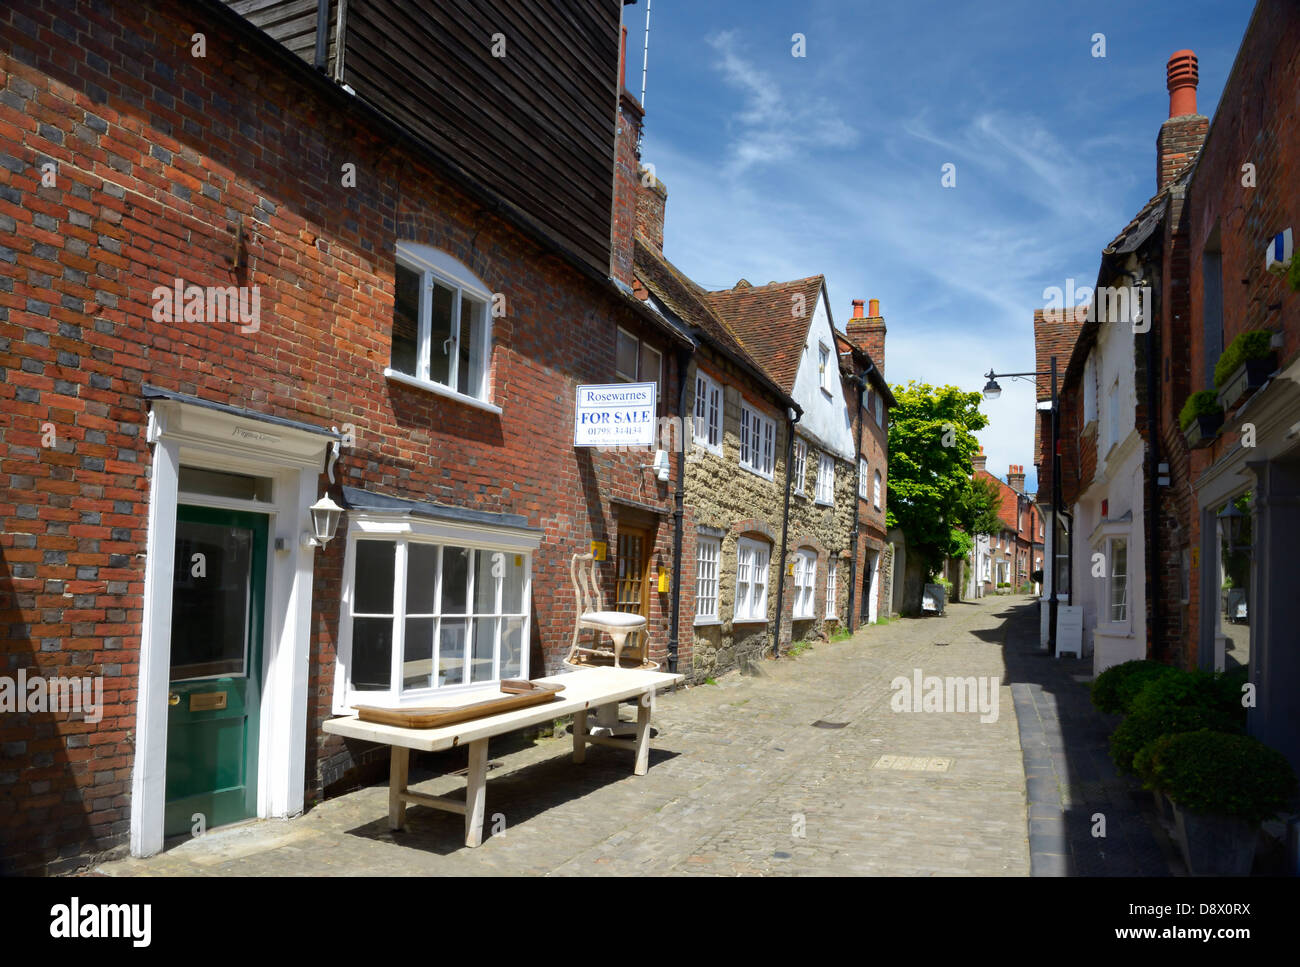 Lombard Street, a cobbled thoroughfare in the market town of Petworth, West Sussex, UK - Stock Image